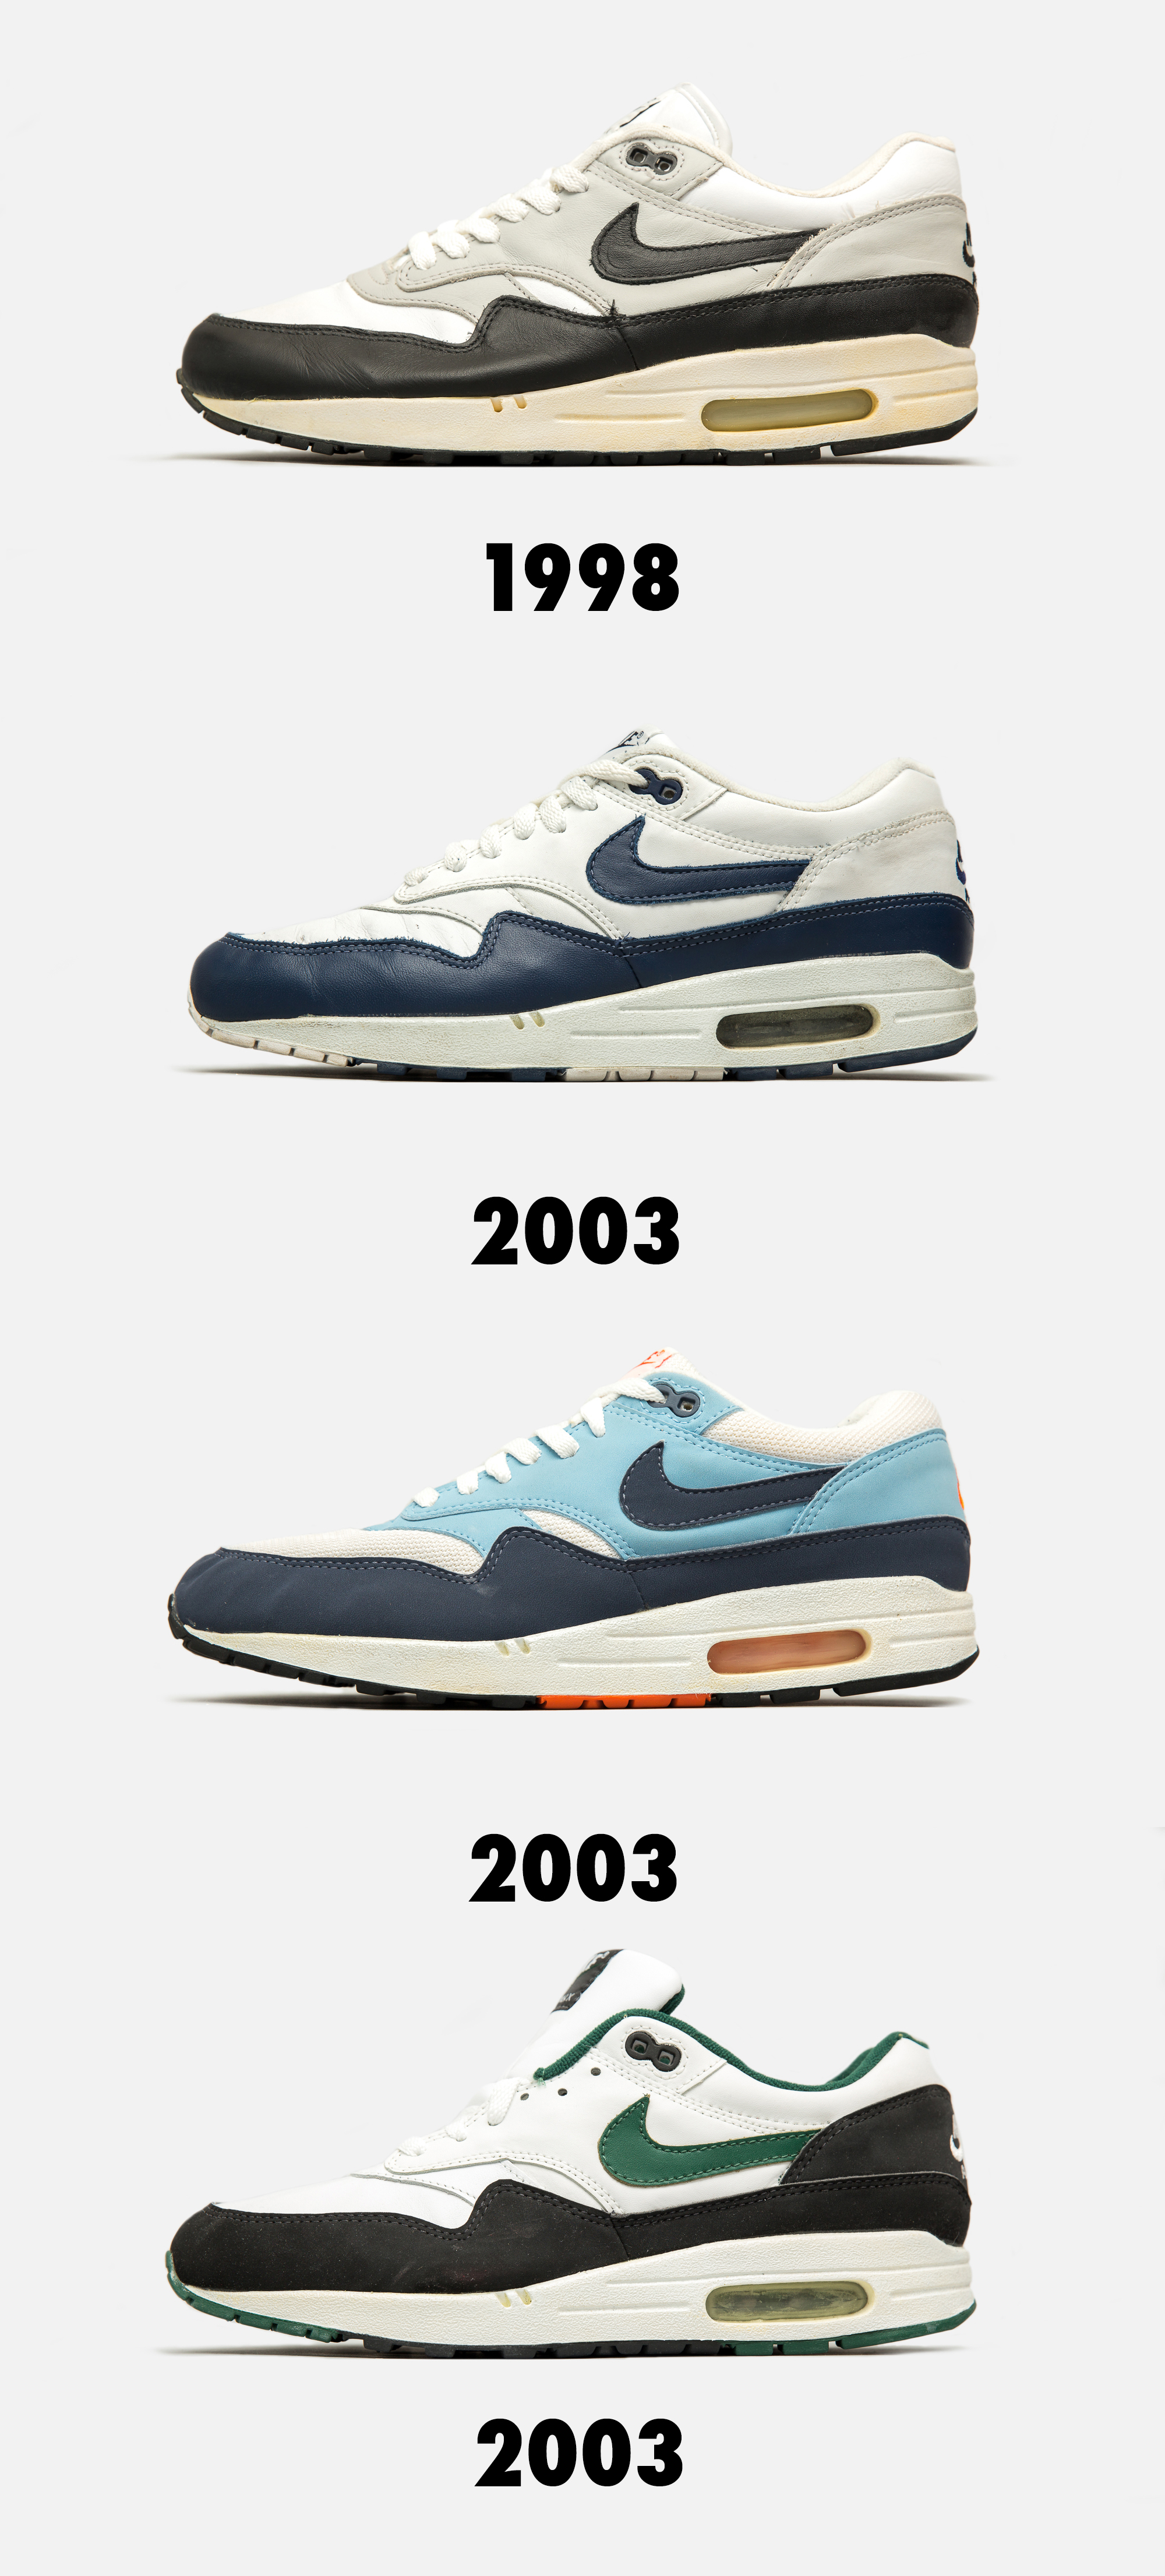 Archive Max SizeHq Lock Blog Air UpNike OkXZTPui